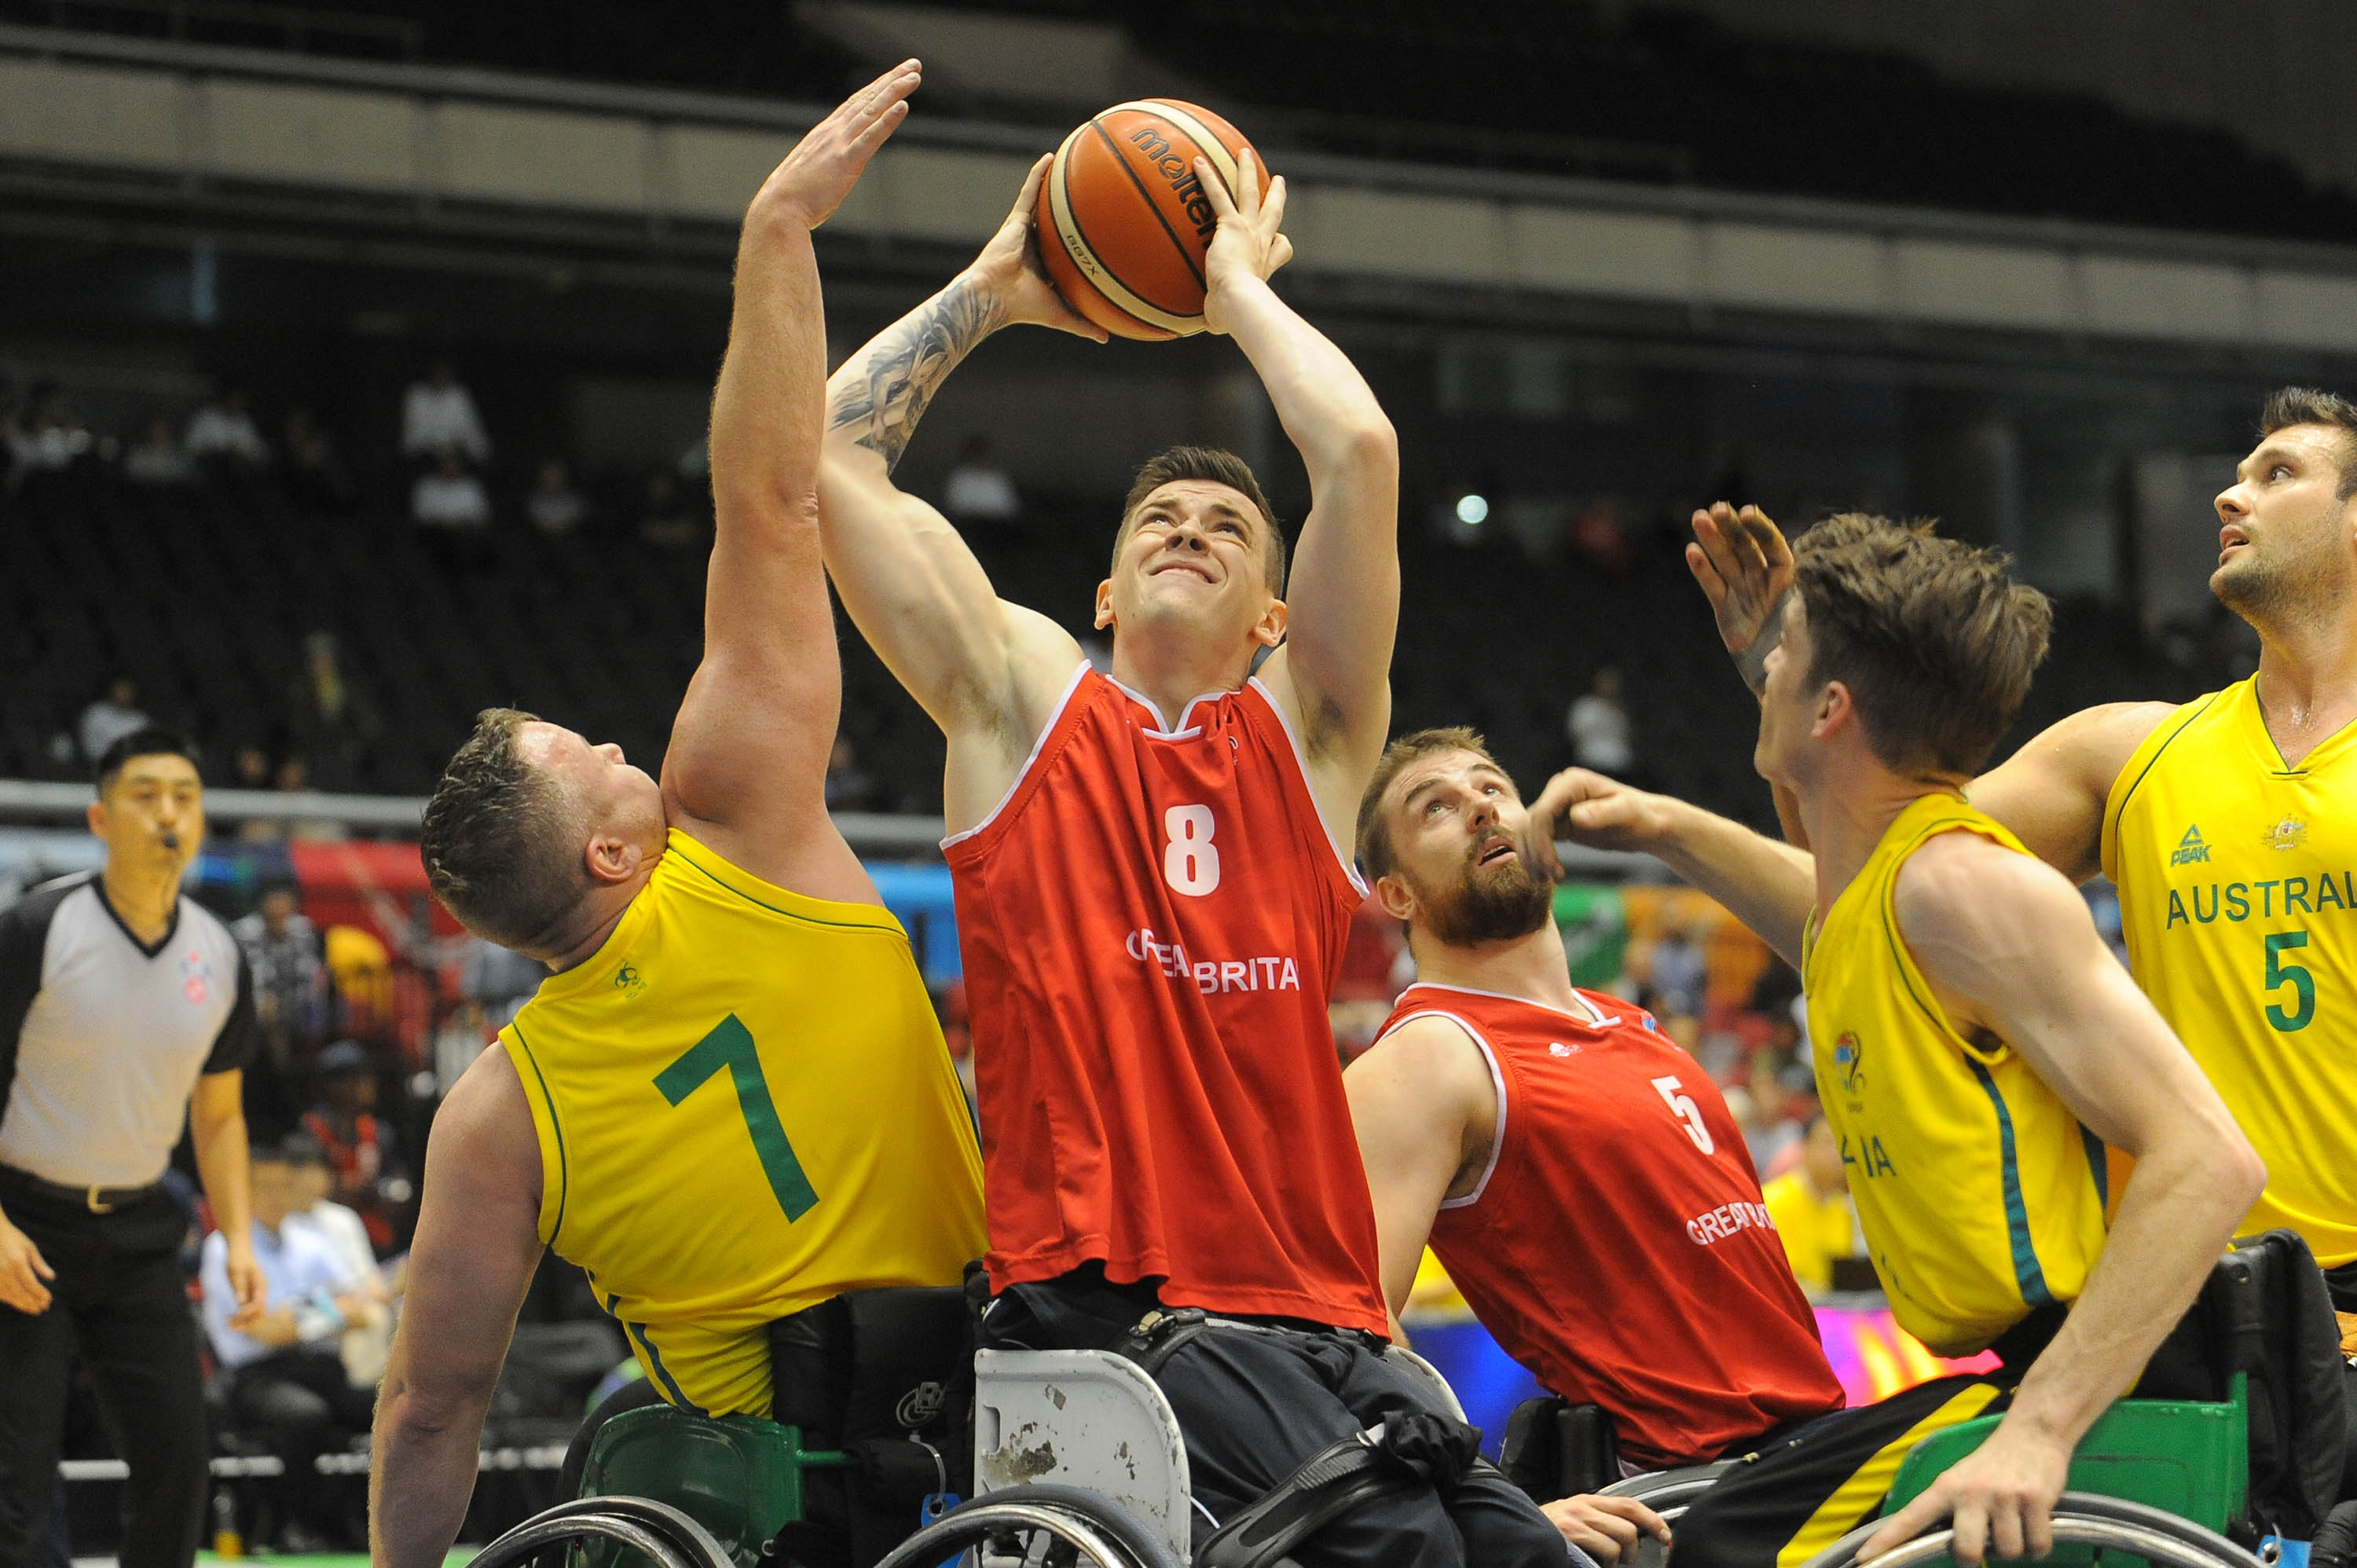 Wheelchair basketball player considers leg amputation after rule change